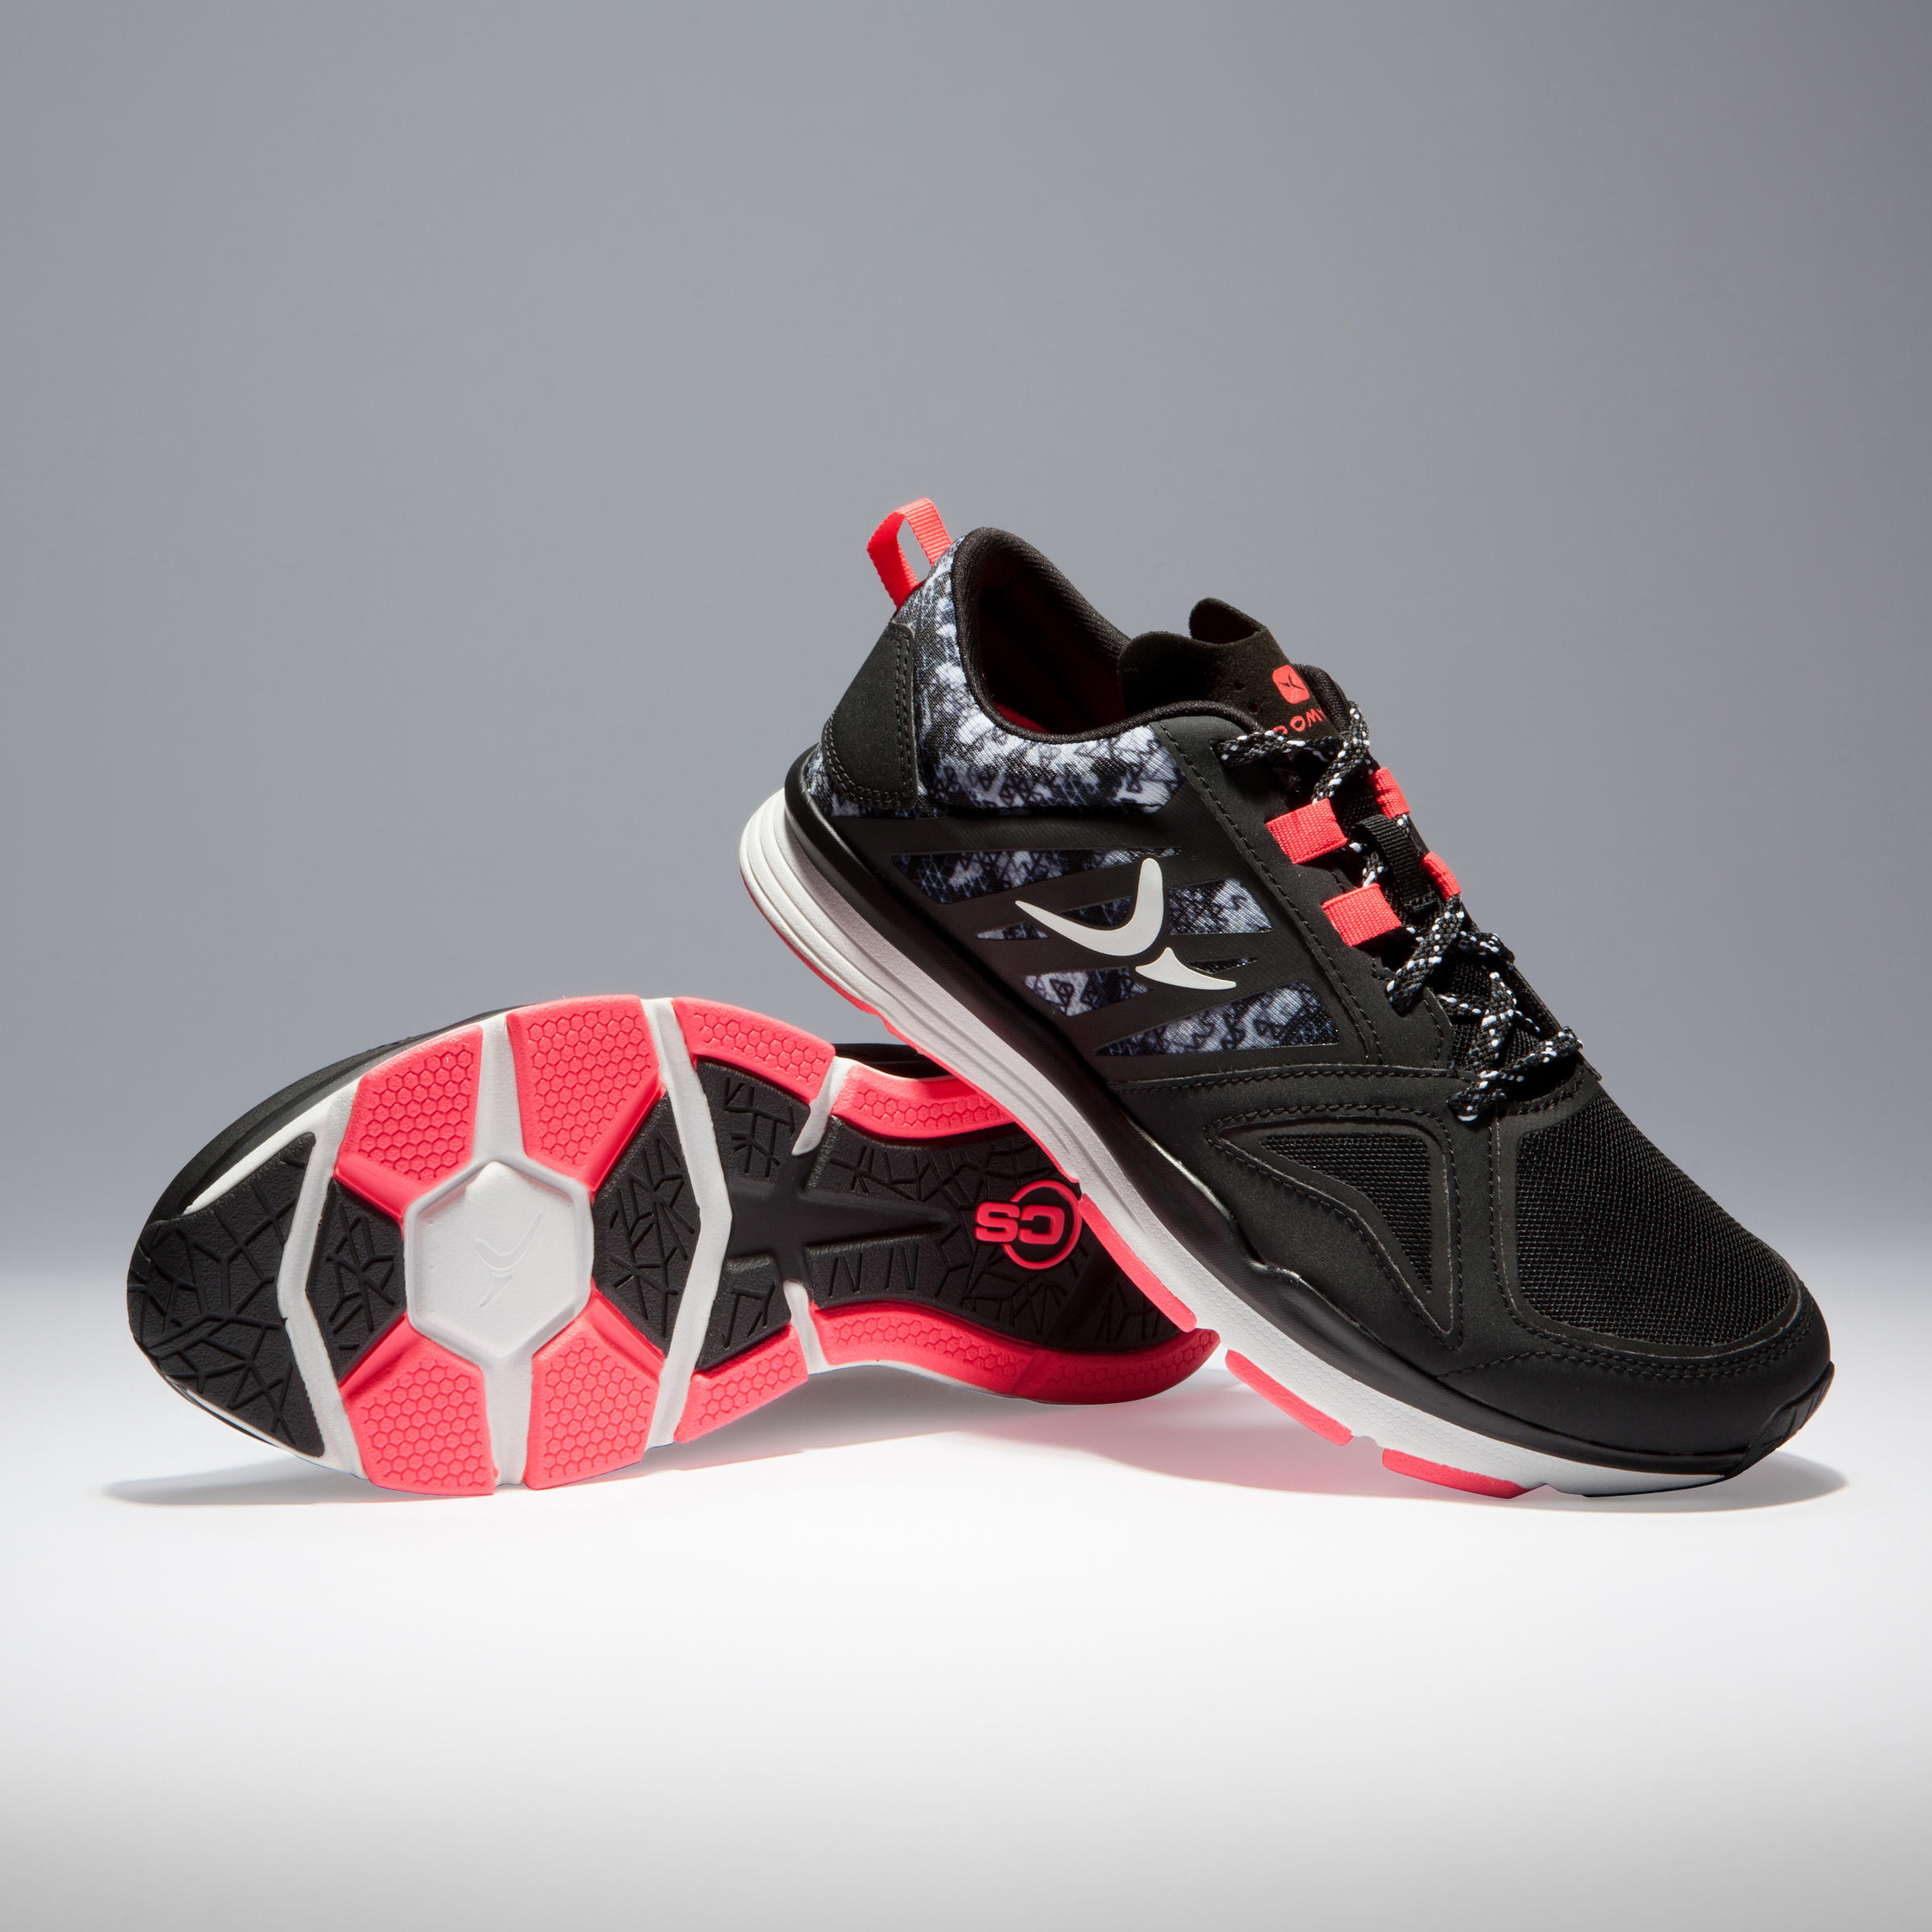 900 Women's Cardio Fitness Shoes - Black and Pink